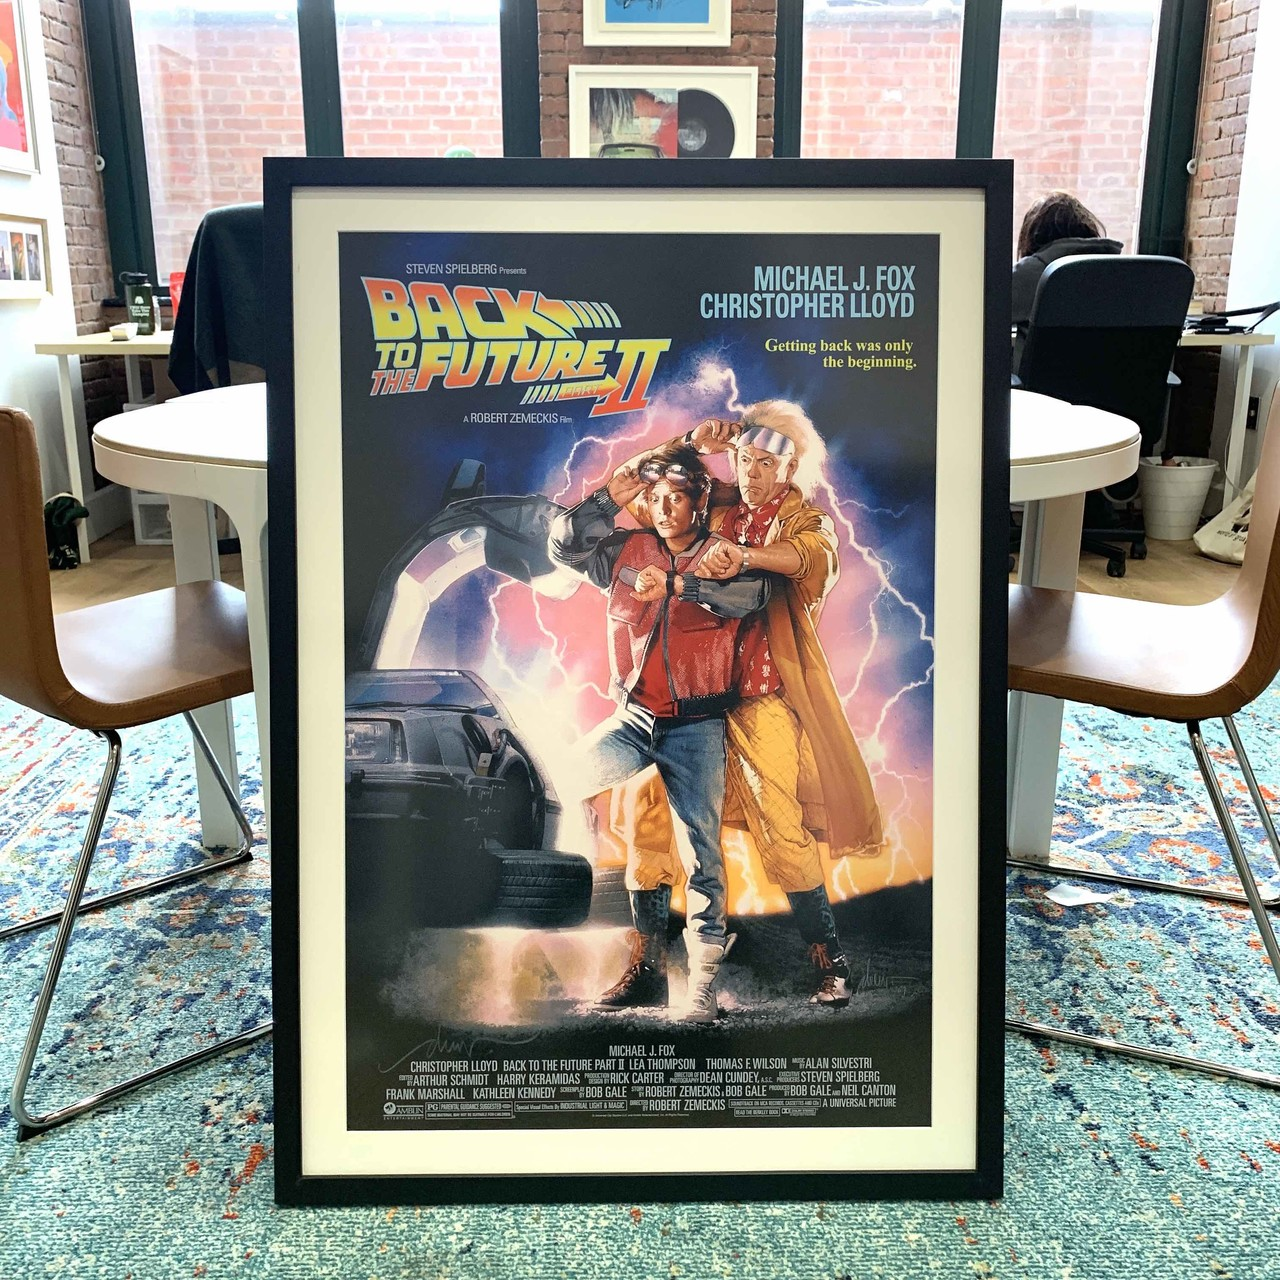 Back to the Future poster custom framed